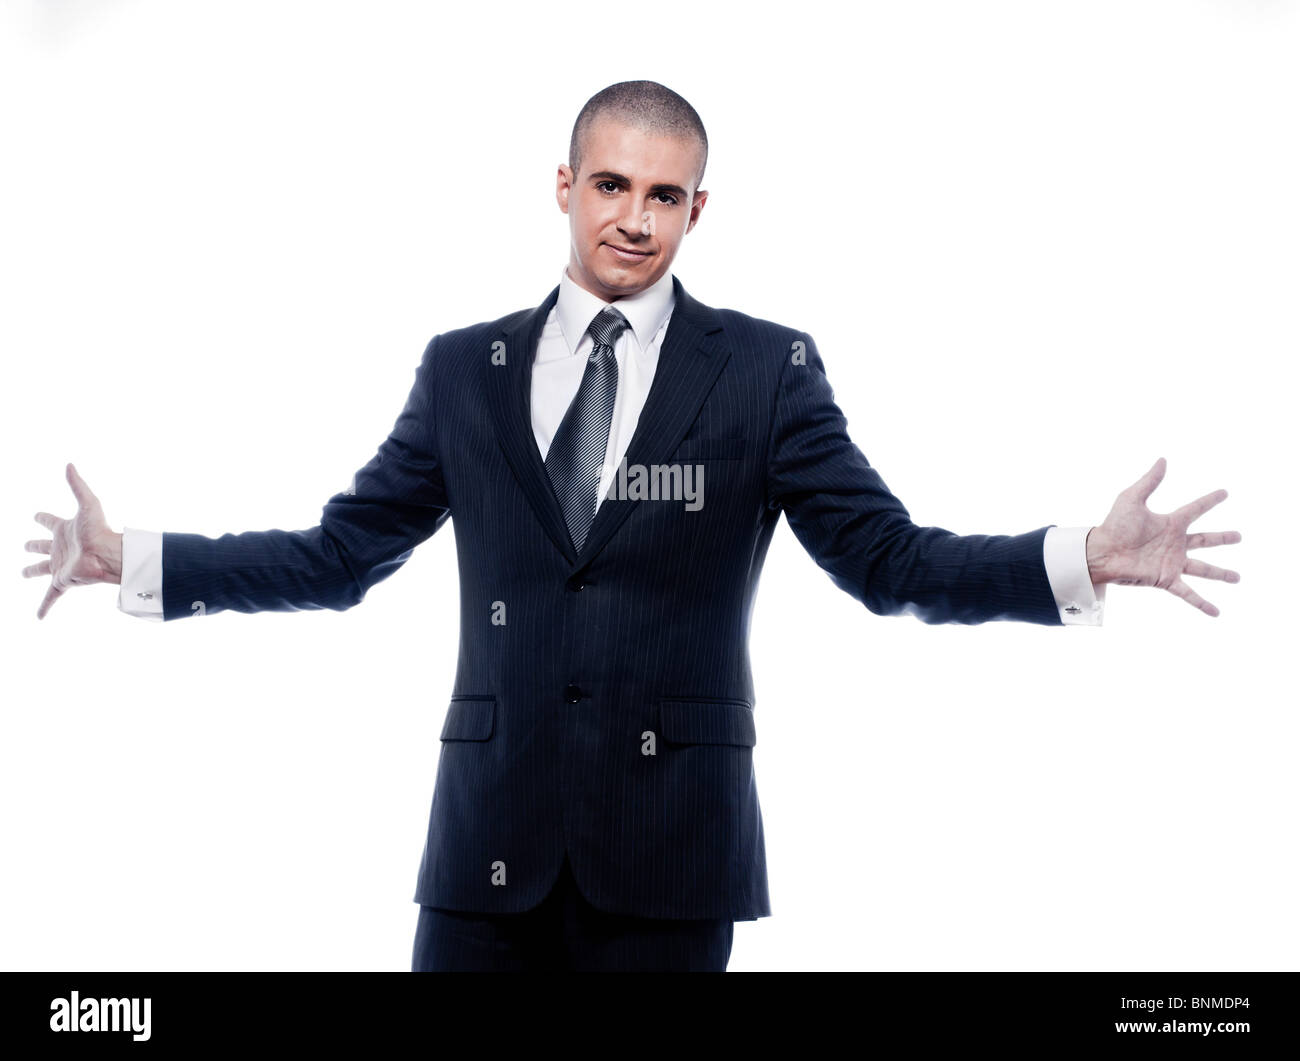 caucasian man businessman welcoming open arms portrait isolated studio on white background - Stock Image